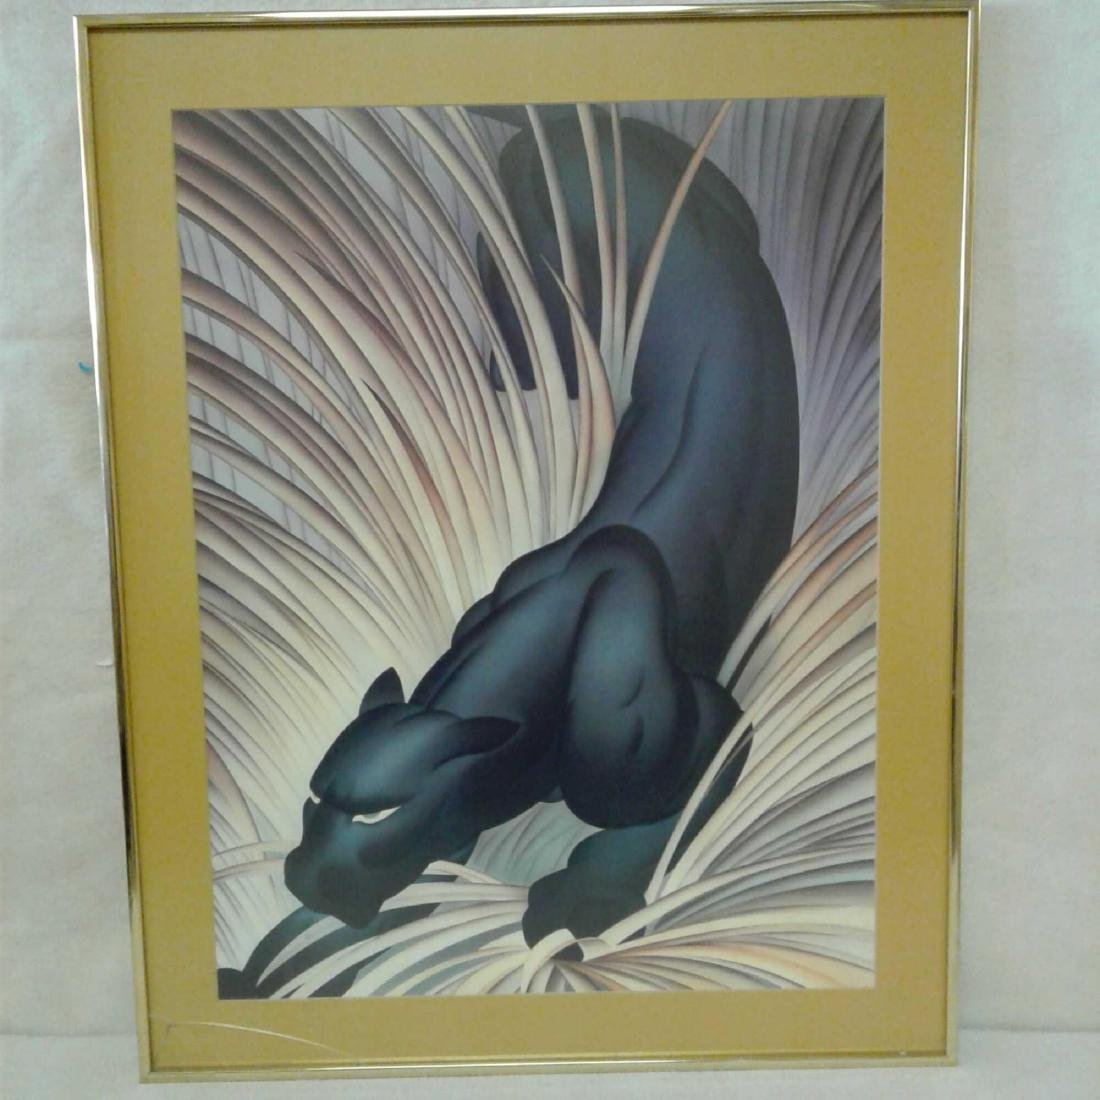 Black Panther Print in Gold Frame